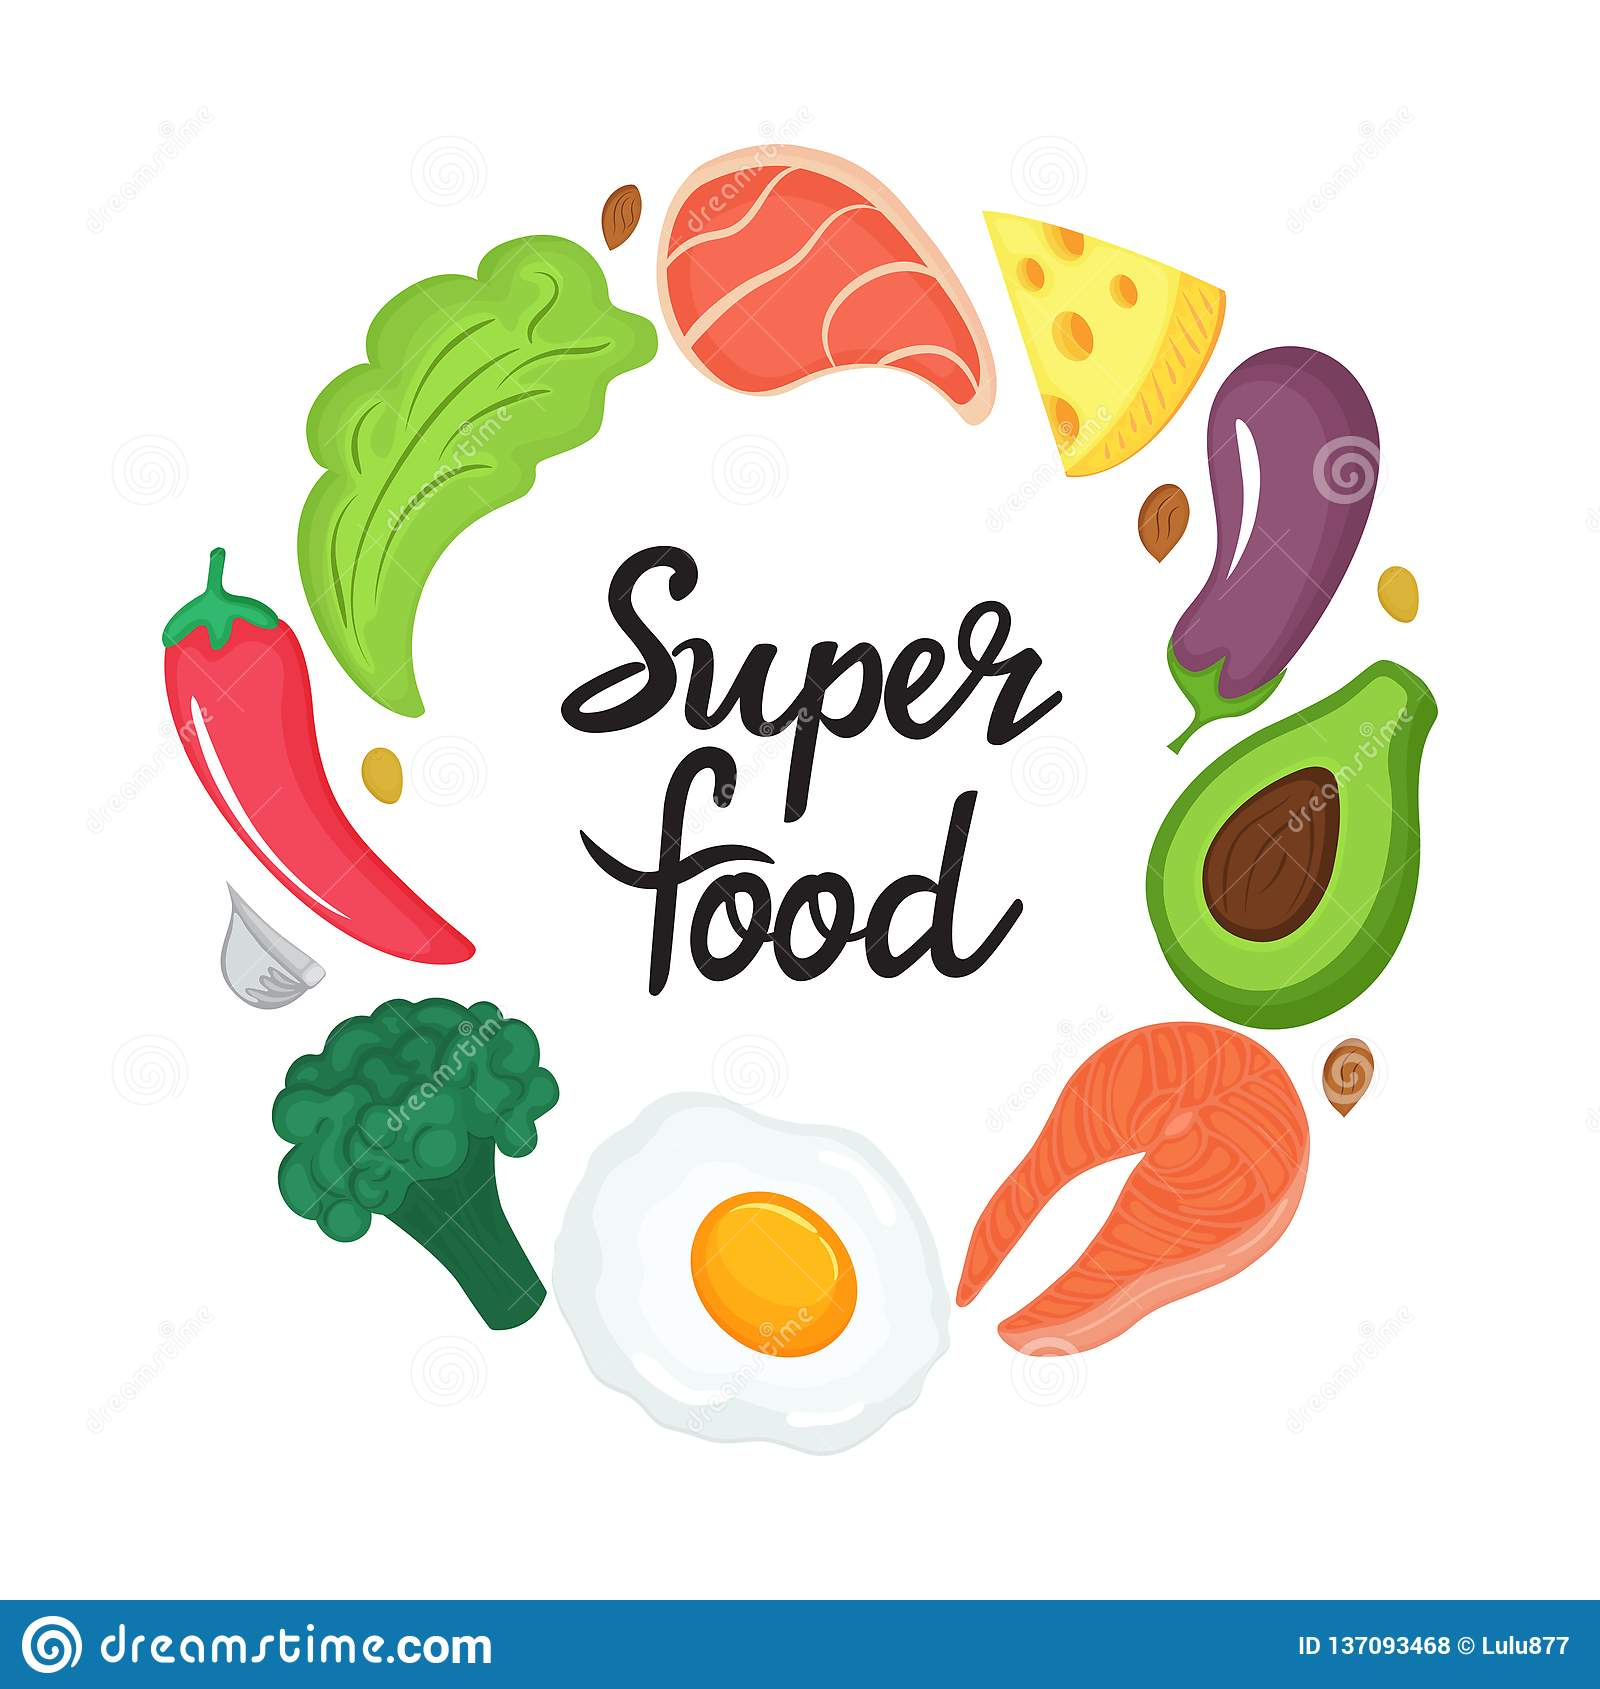 Super food - hand drawn lettering. Round frame of natural vegetables, nuts and foods. Keto nutrition. Ketogenic diet